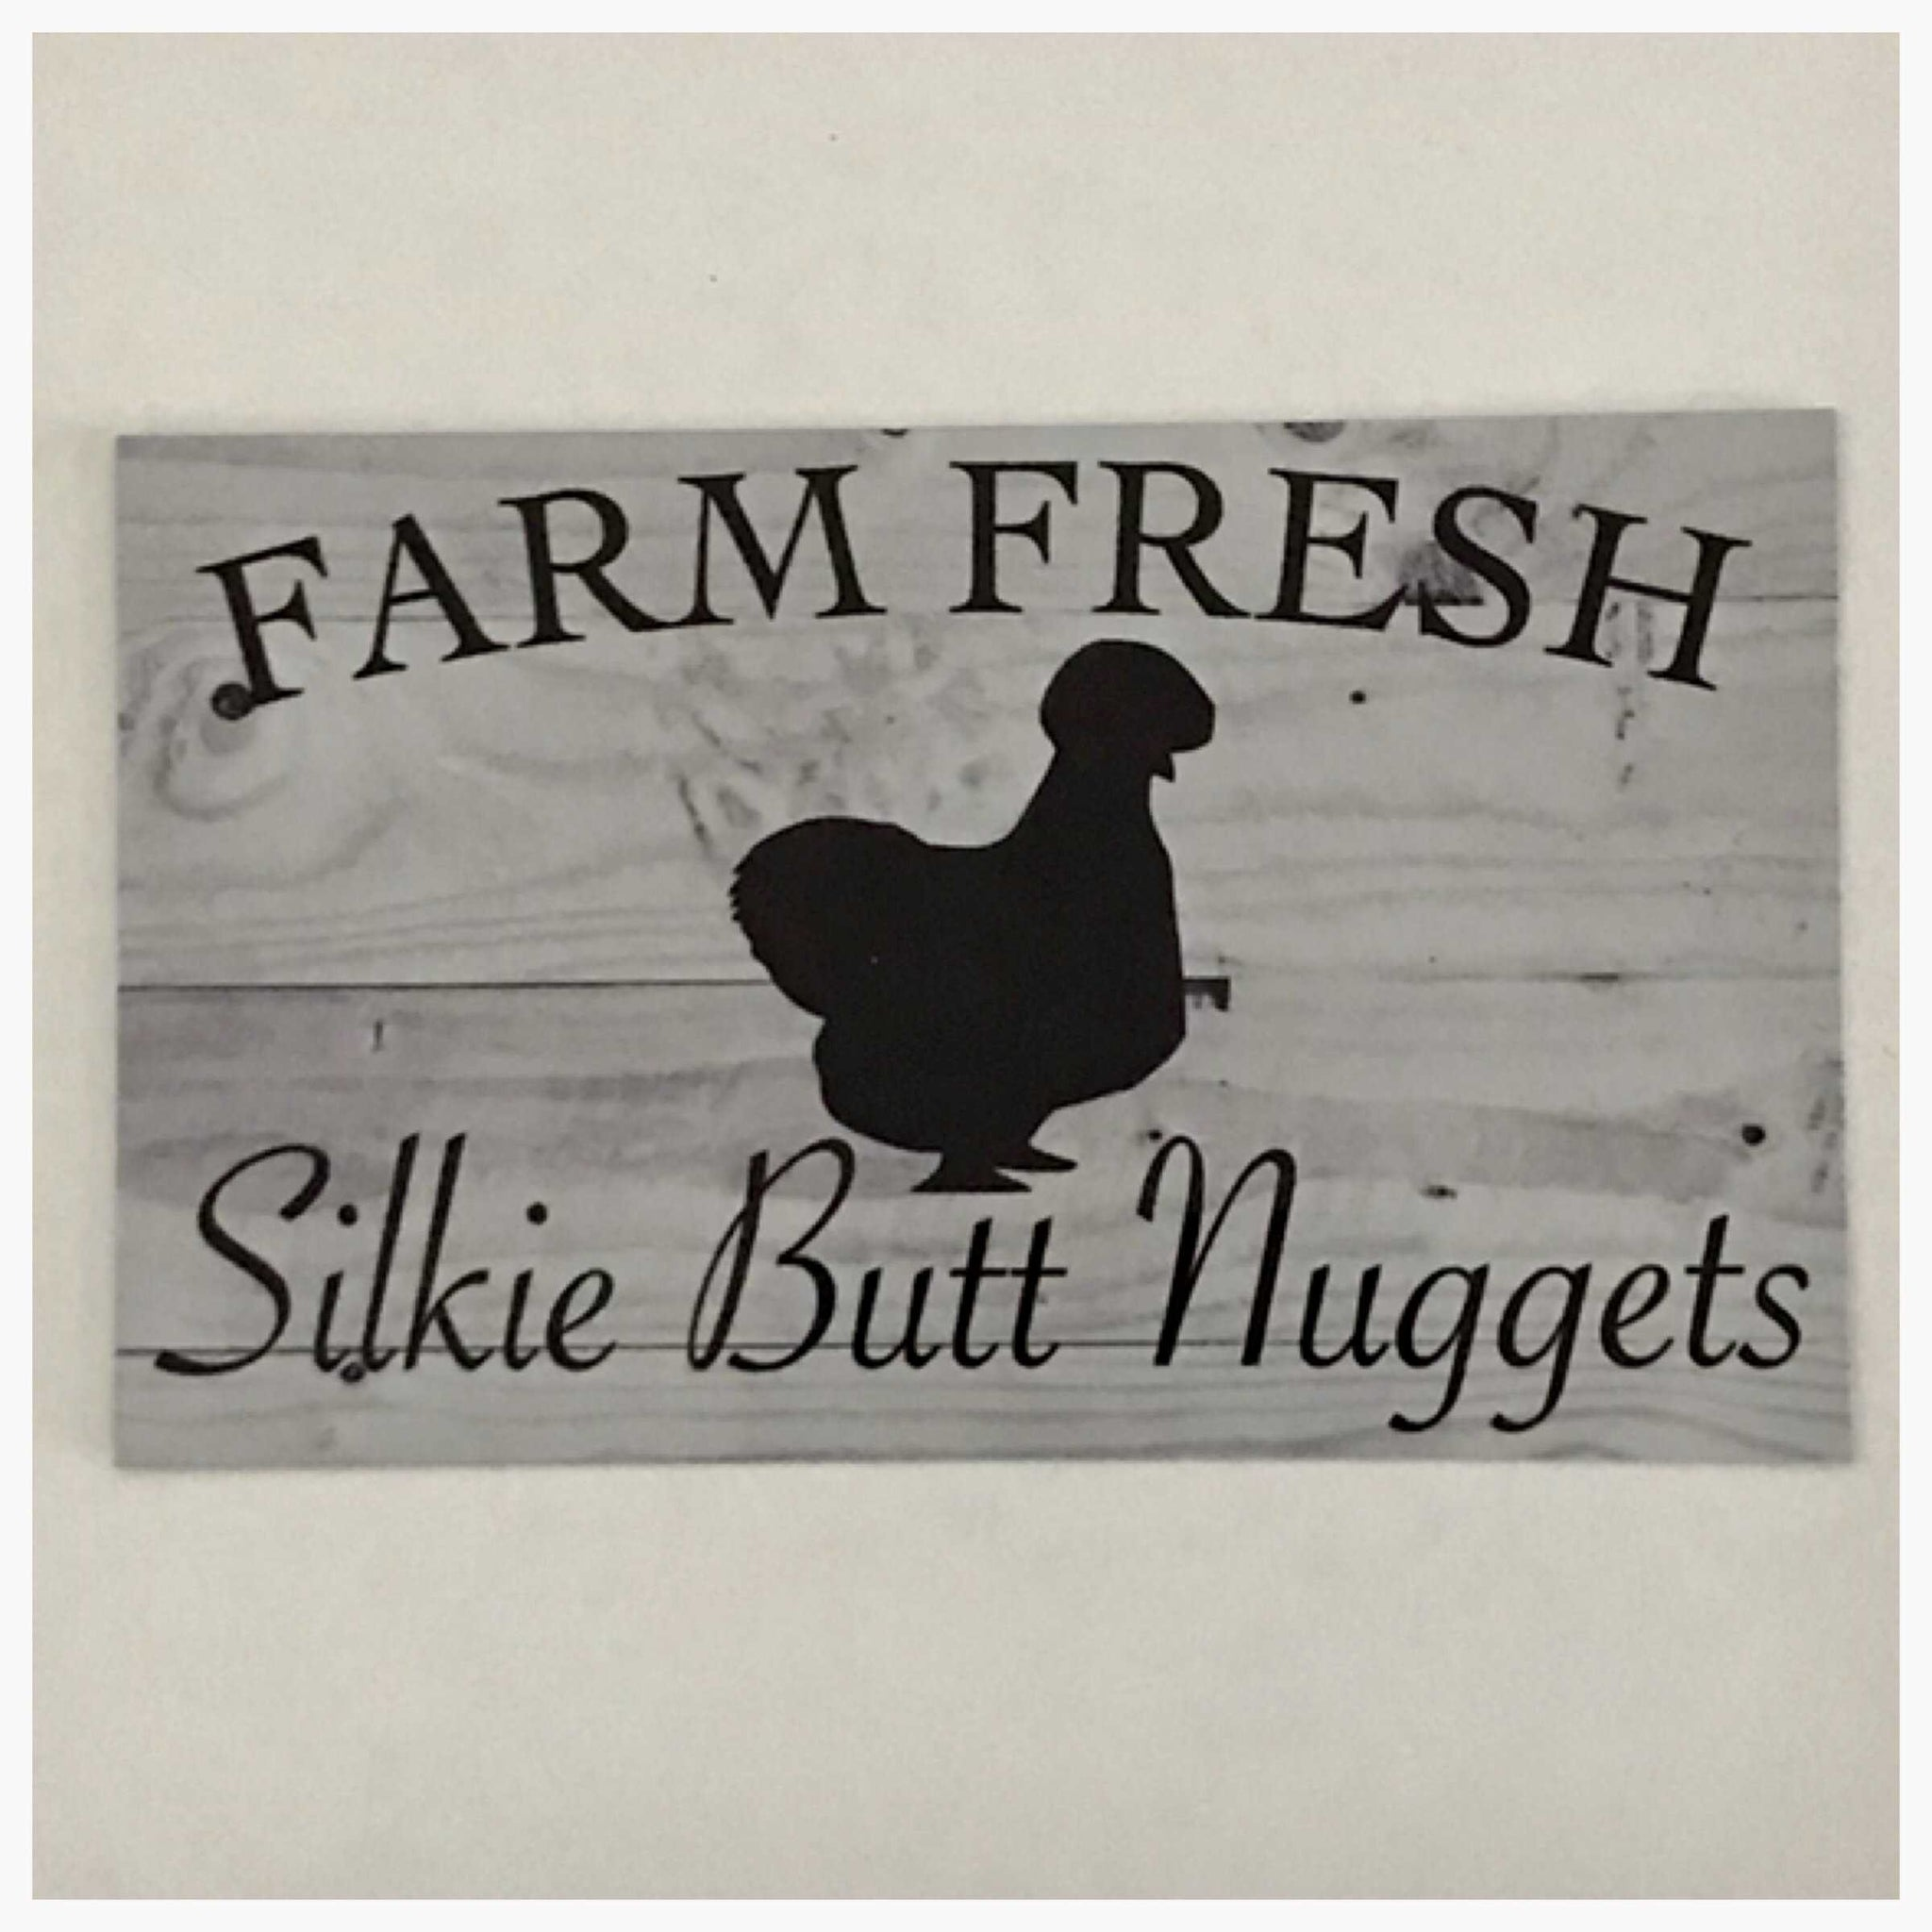 Farm Fresh Silkie Butt Nuggets Egg Sign - The Renmy Store